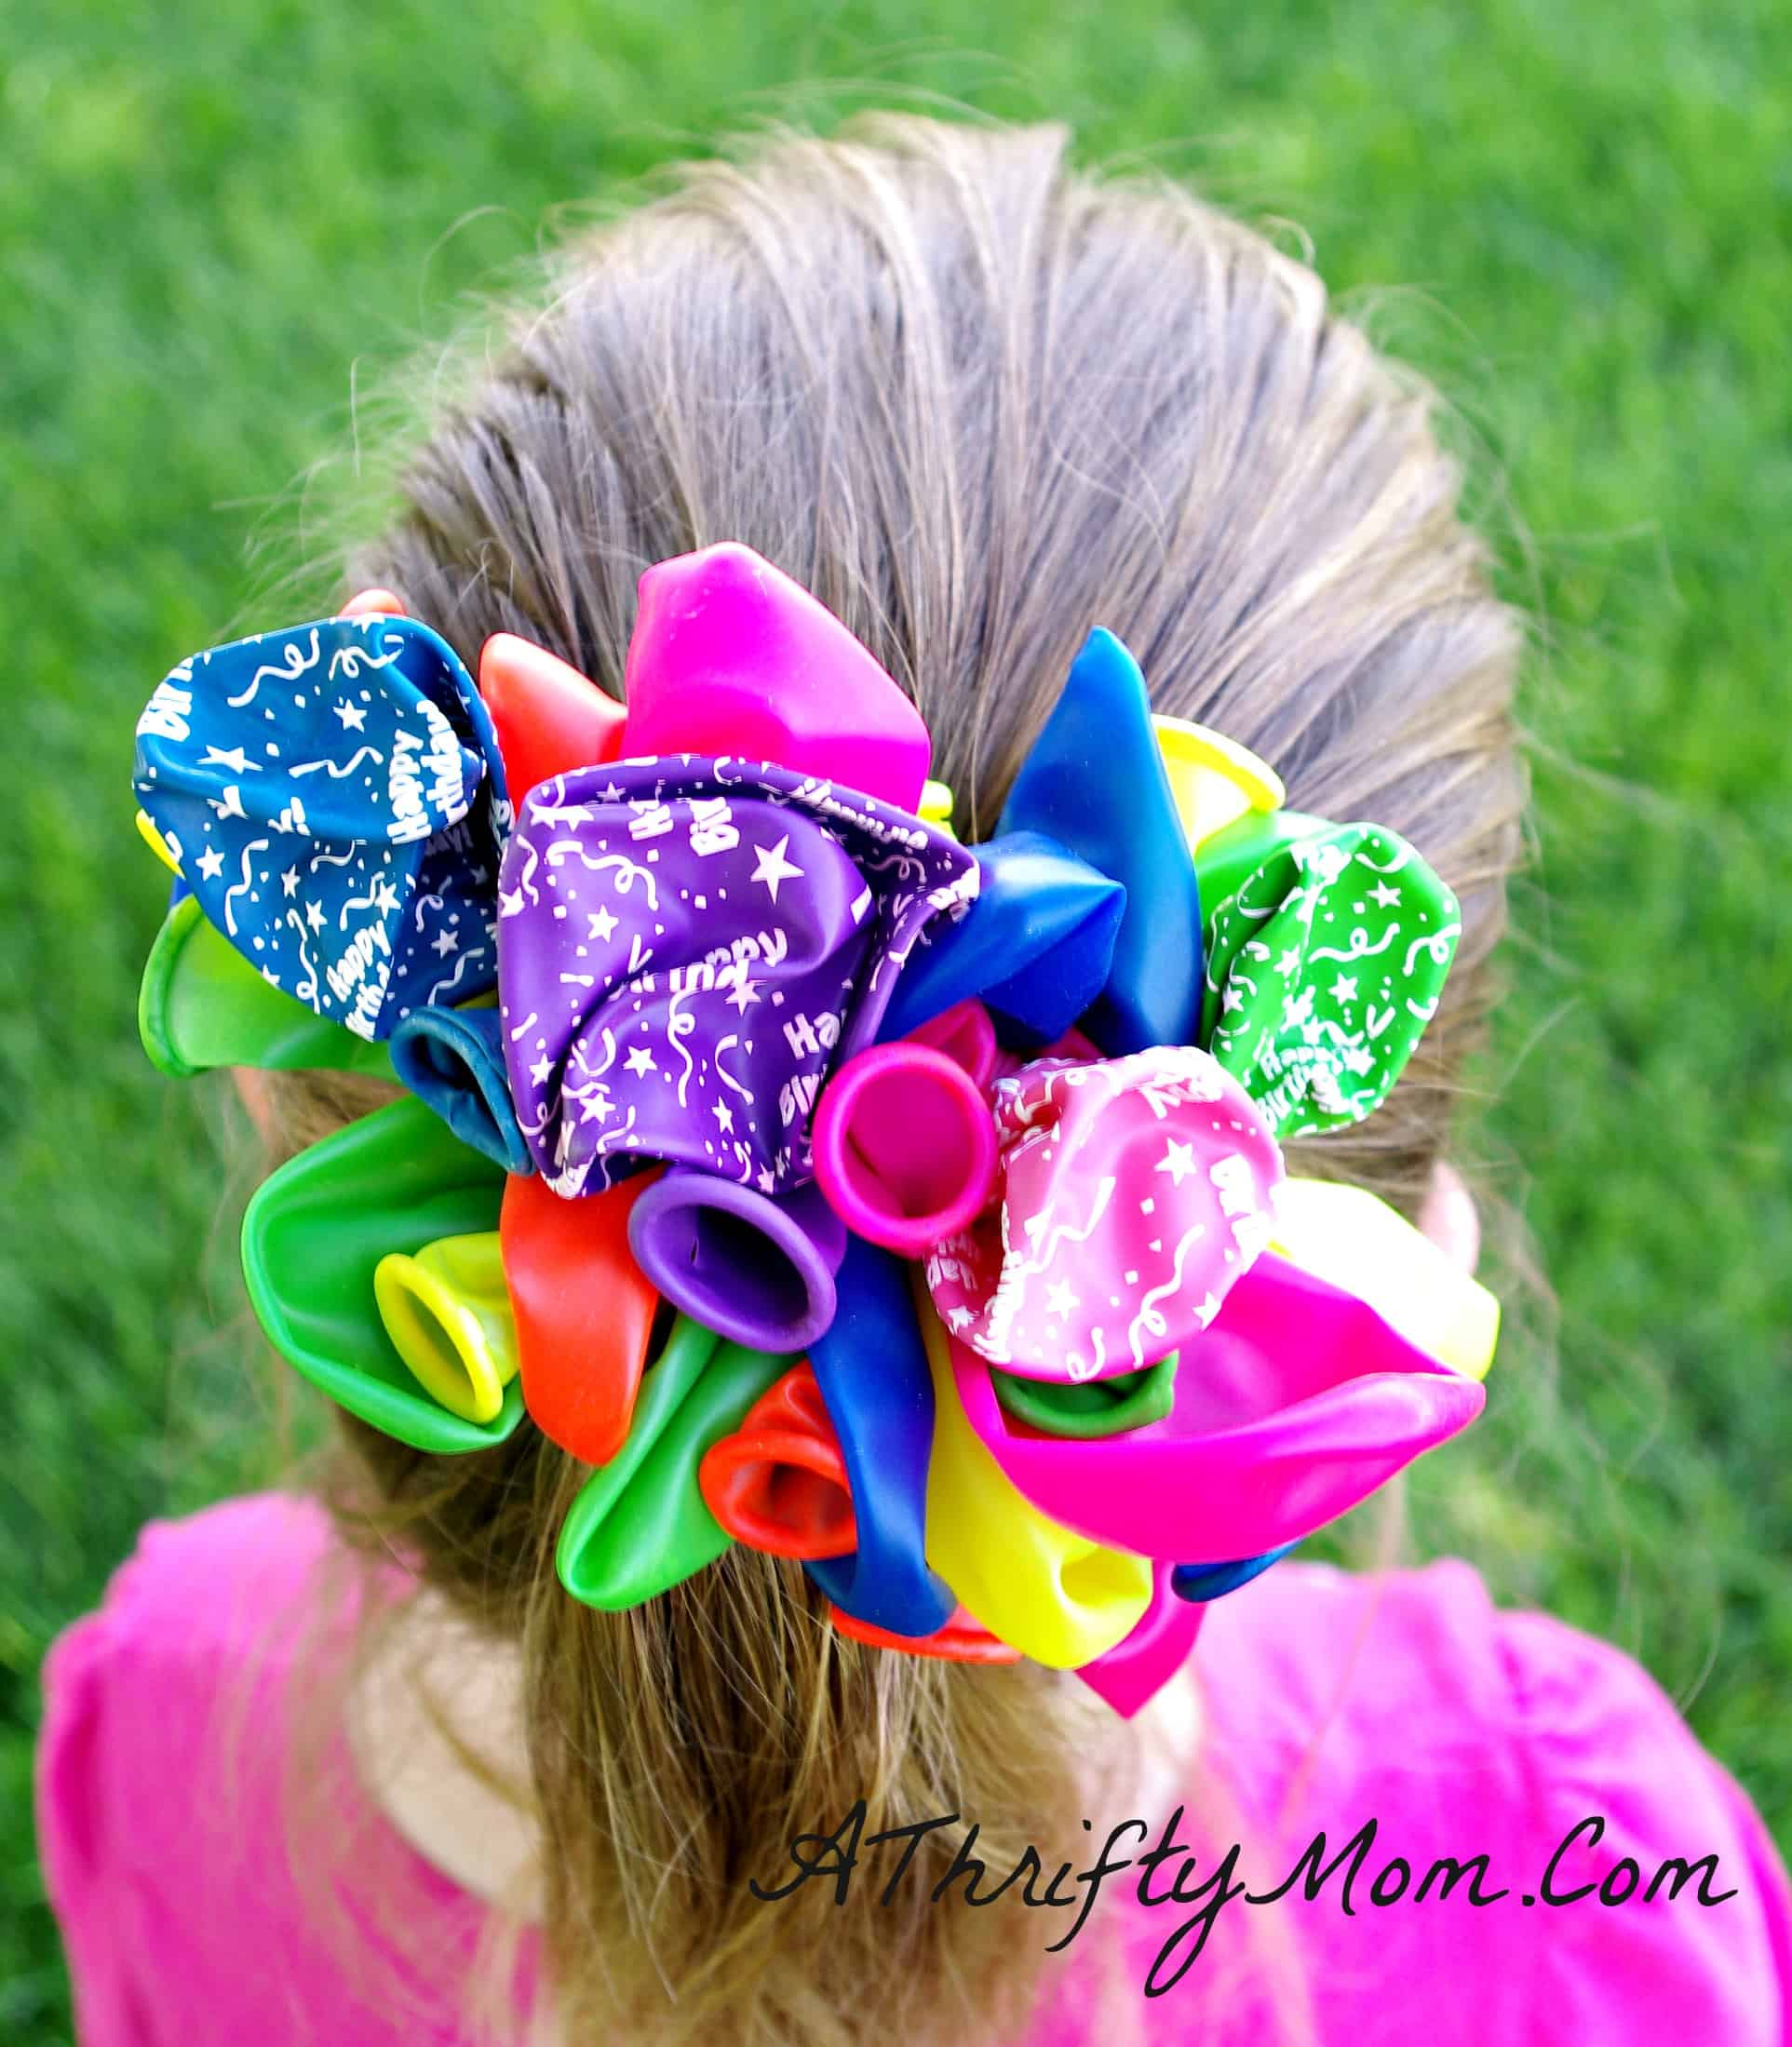 Balloon party barrette